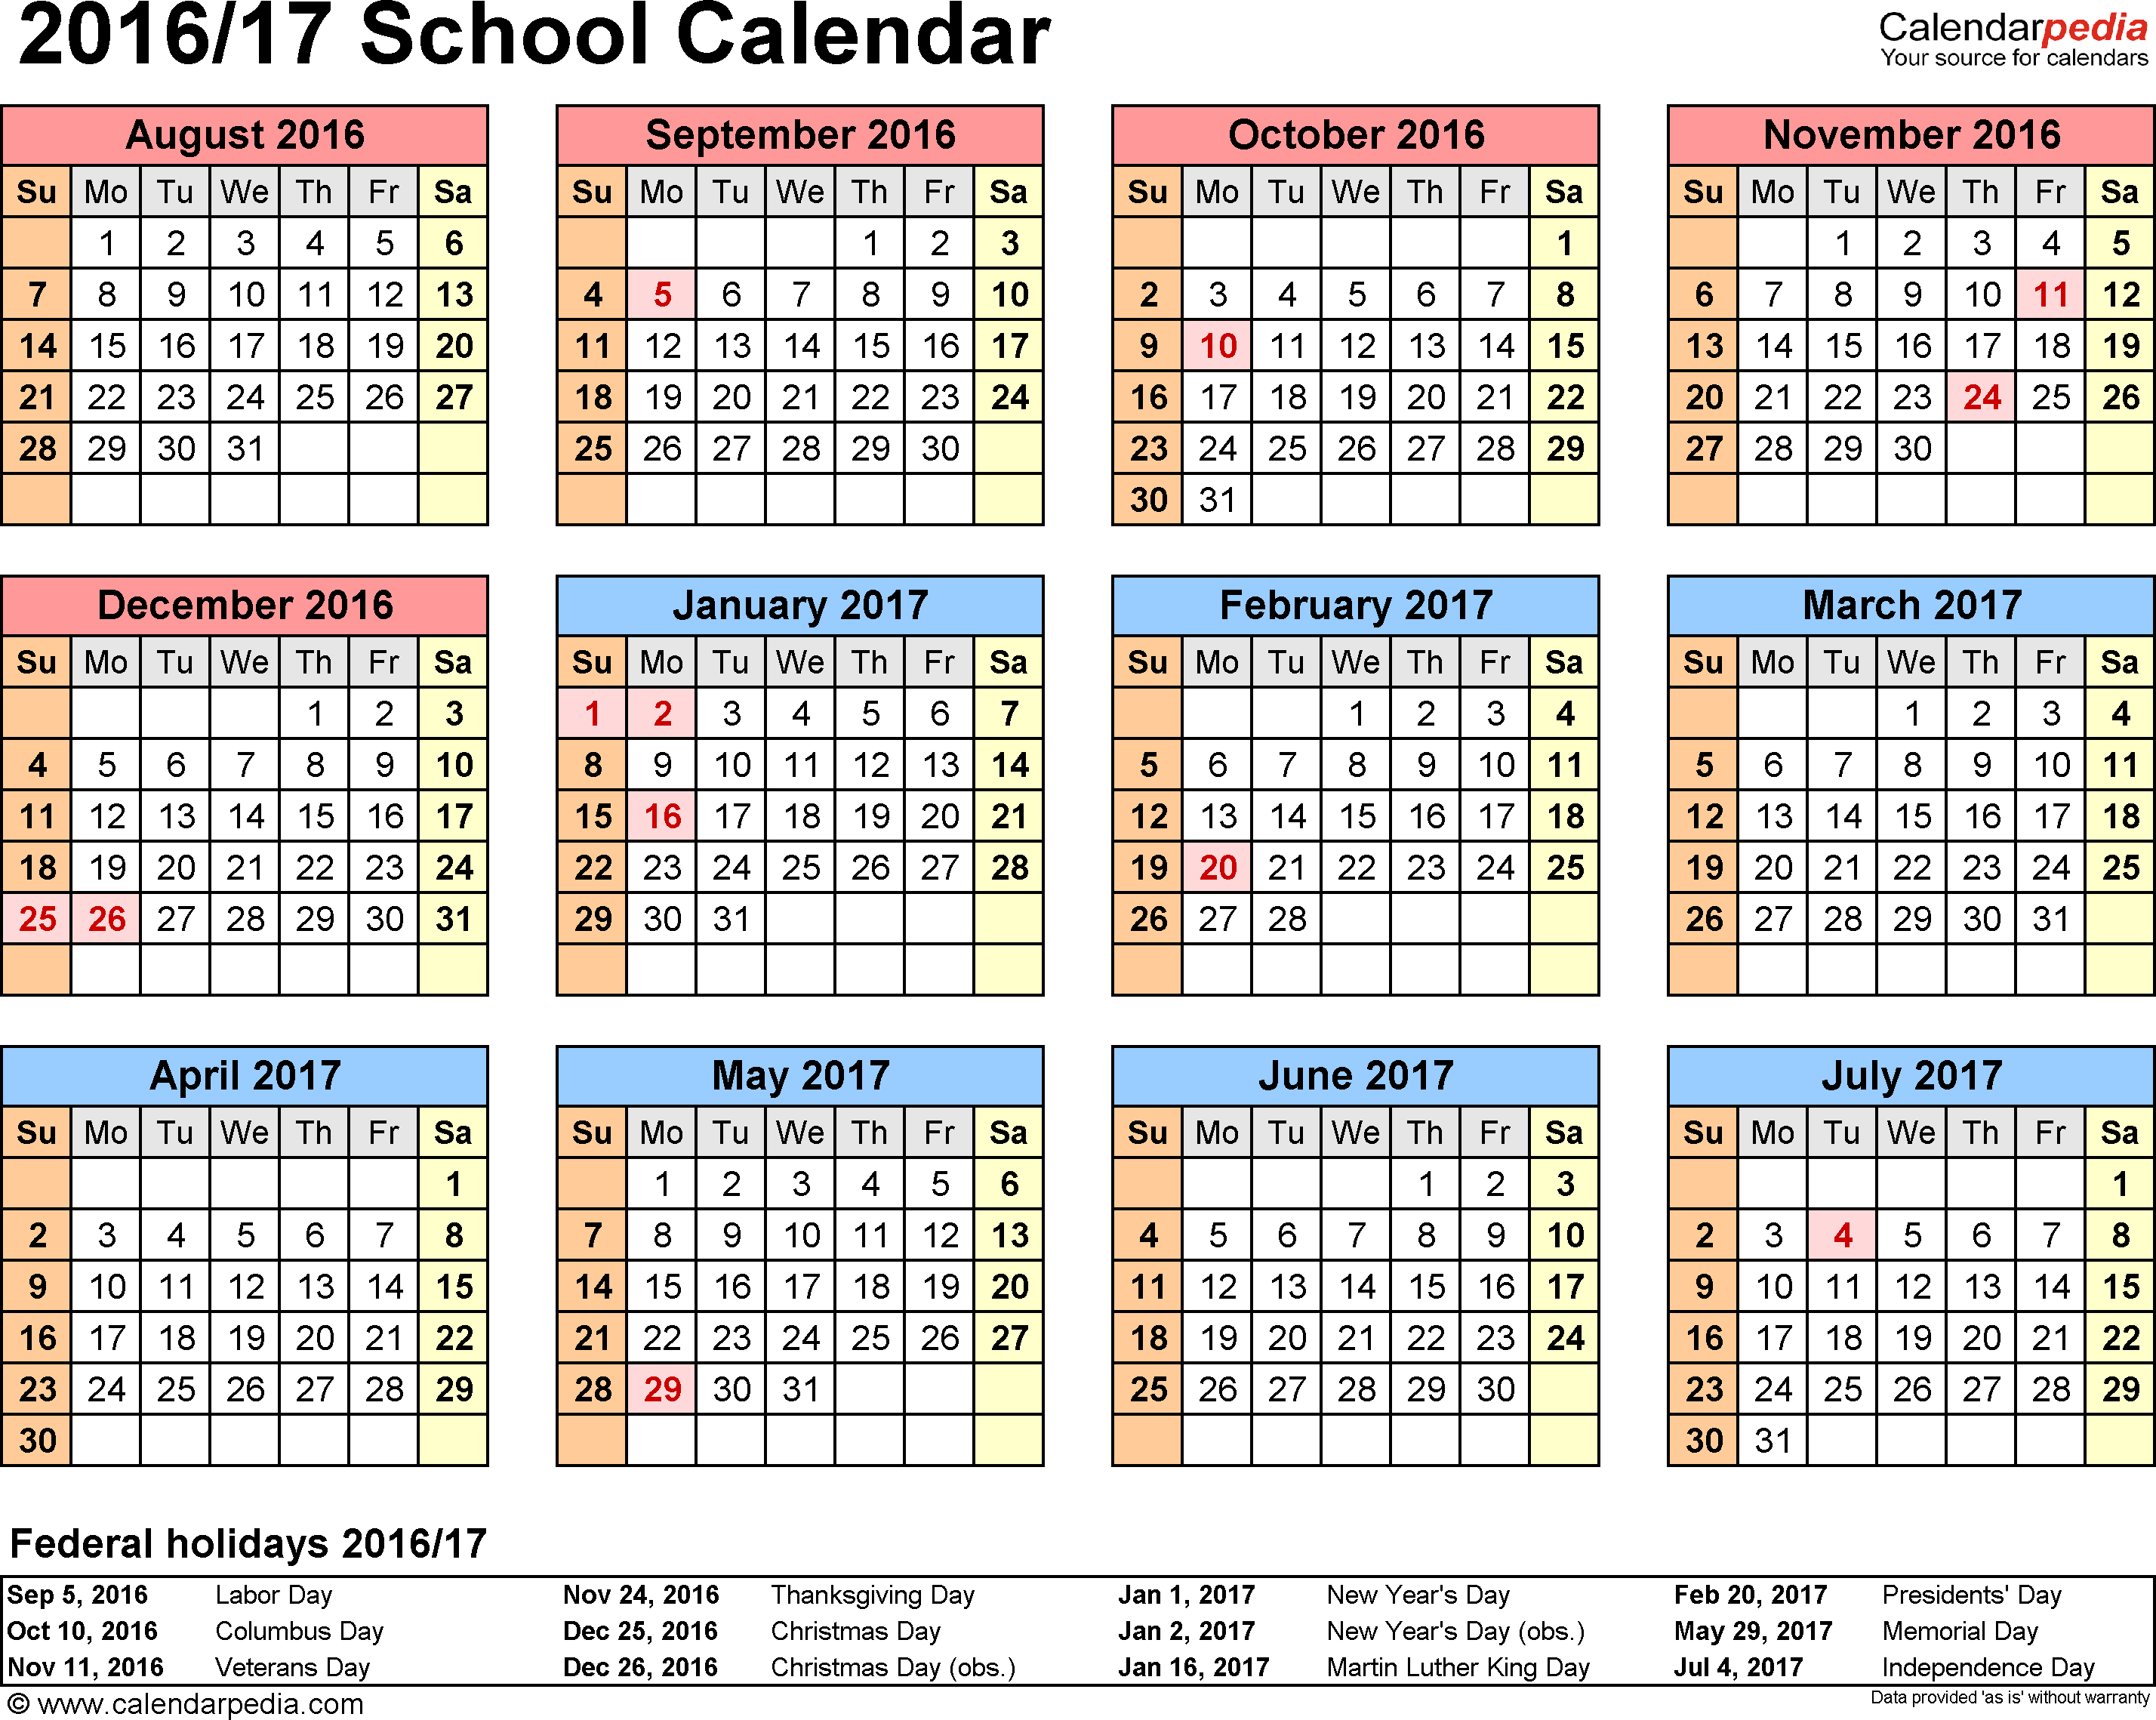 School calendars 2016/2017 as free printable Excel templates